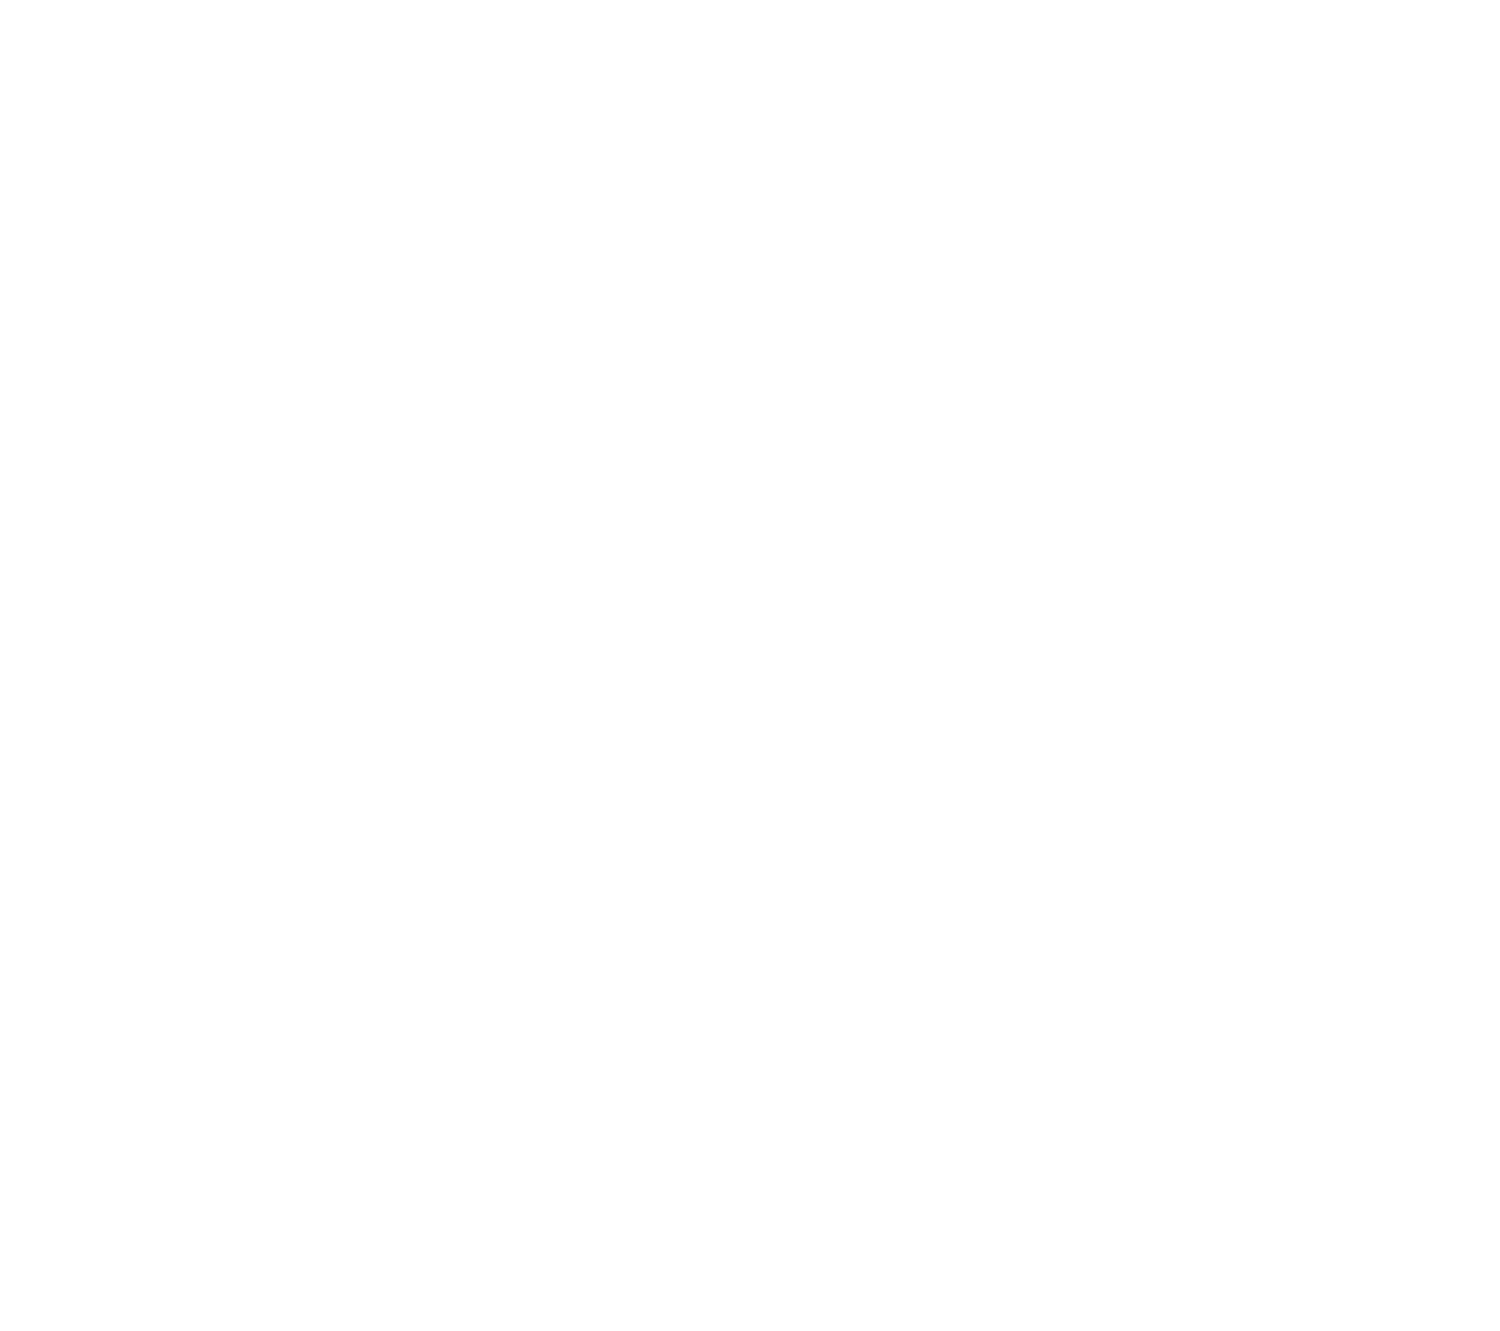 Unveil Films & Photography